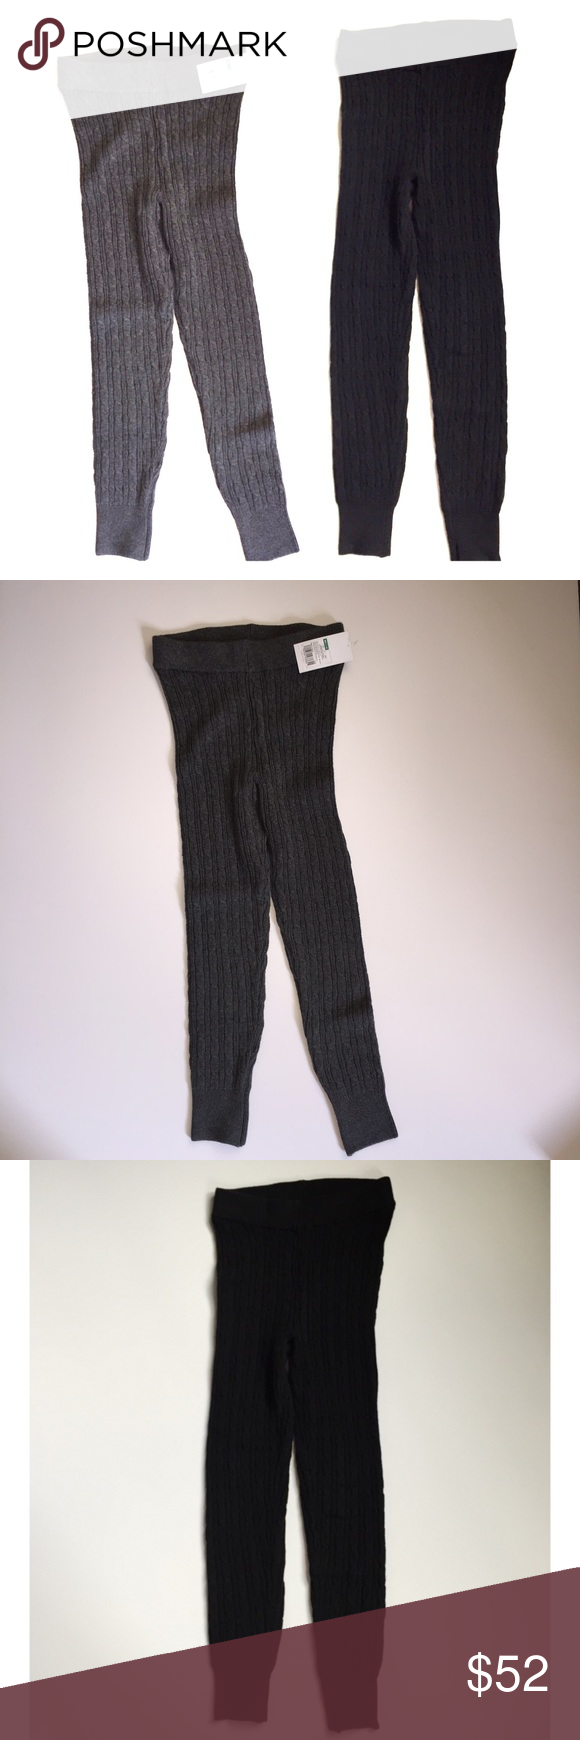 Sold 2 Pairs Cable Knit Sweater Leggings Cable Knit